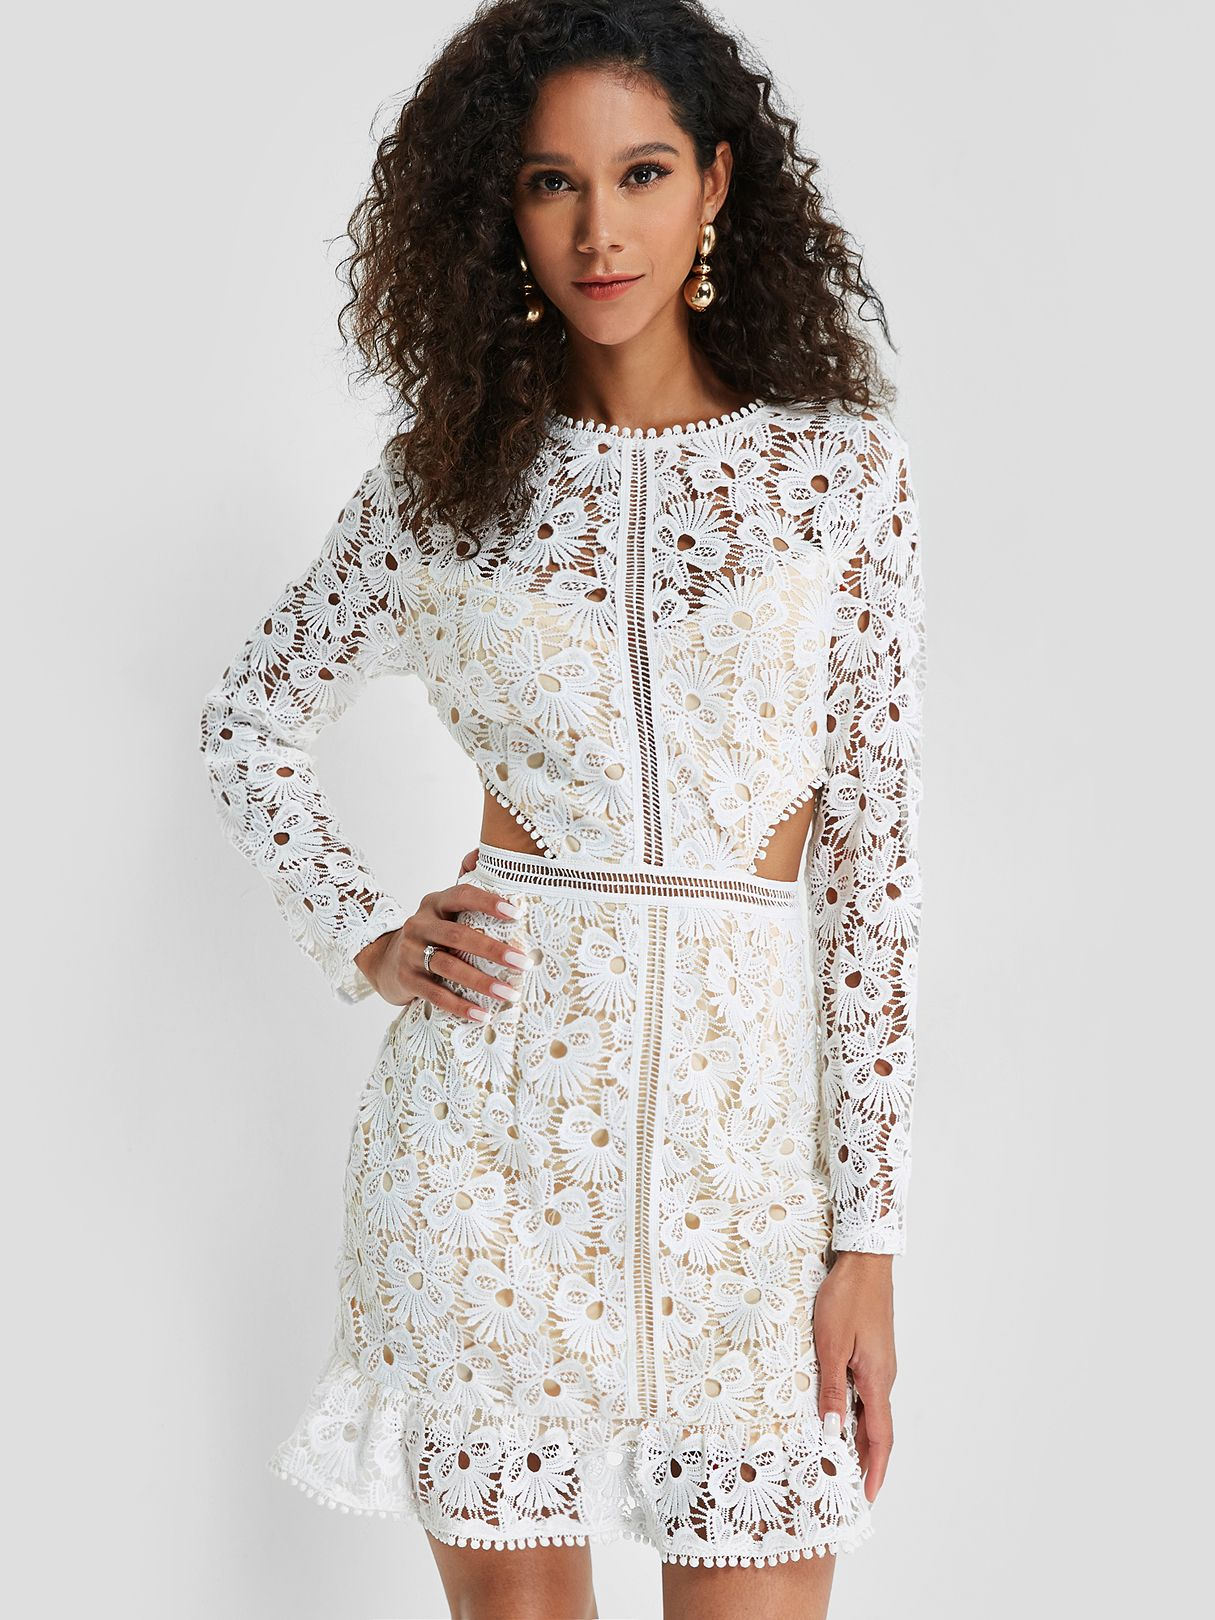 Extra 15 Your First Order On Yonis App Lace Dress Lace Peplum Dress Lace Dress With Sleeves [ 1620 x 1215 Pixel ]